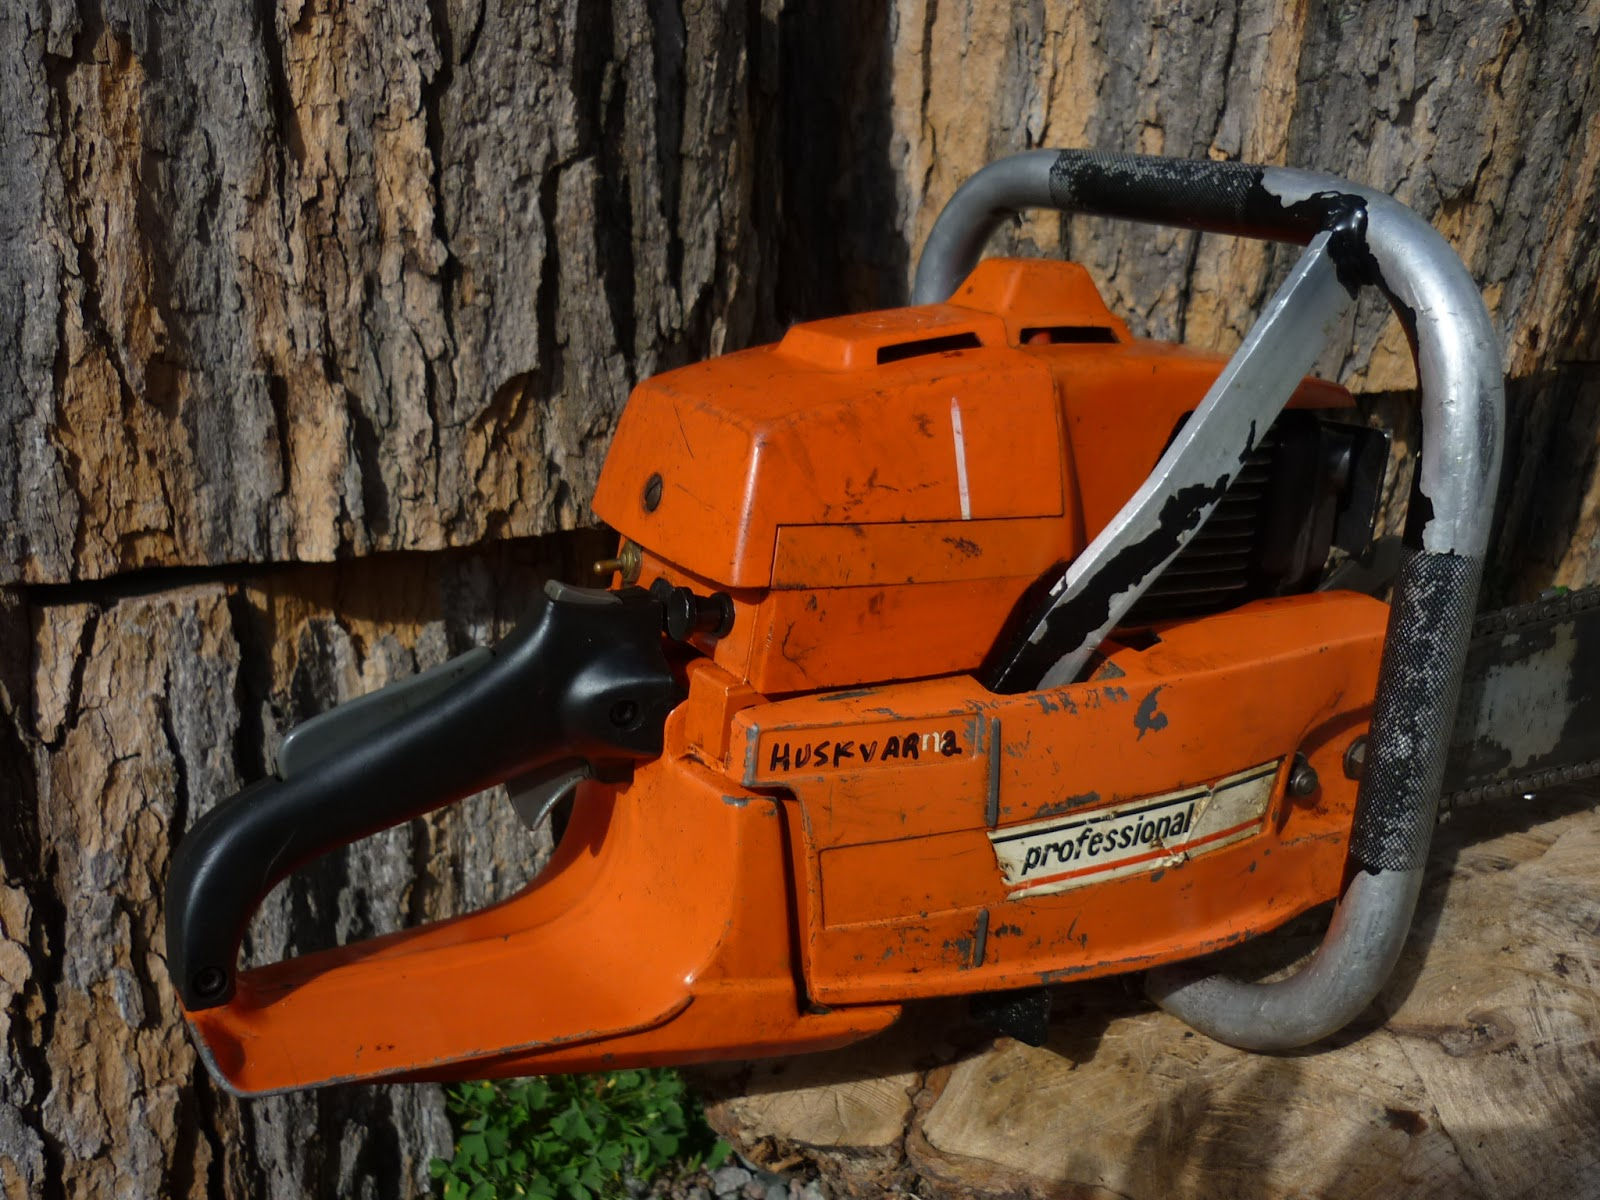 huskvarna senior personals Senior member join date fort hood, texas posts 698 husqvarna 46 rifle i came accross one of these they've got more old husqvarna.